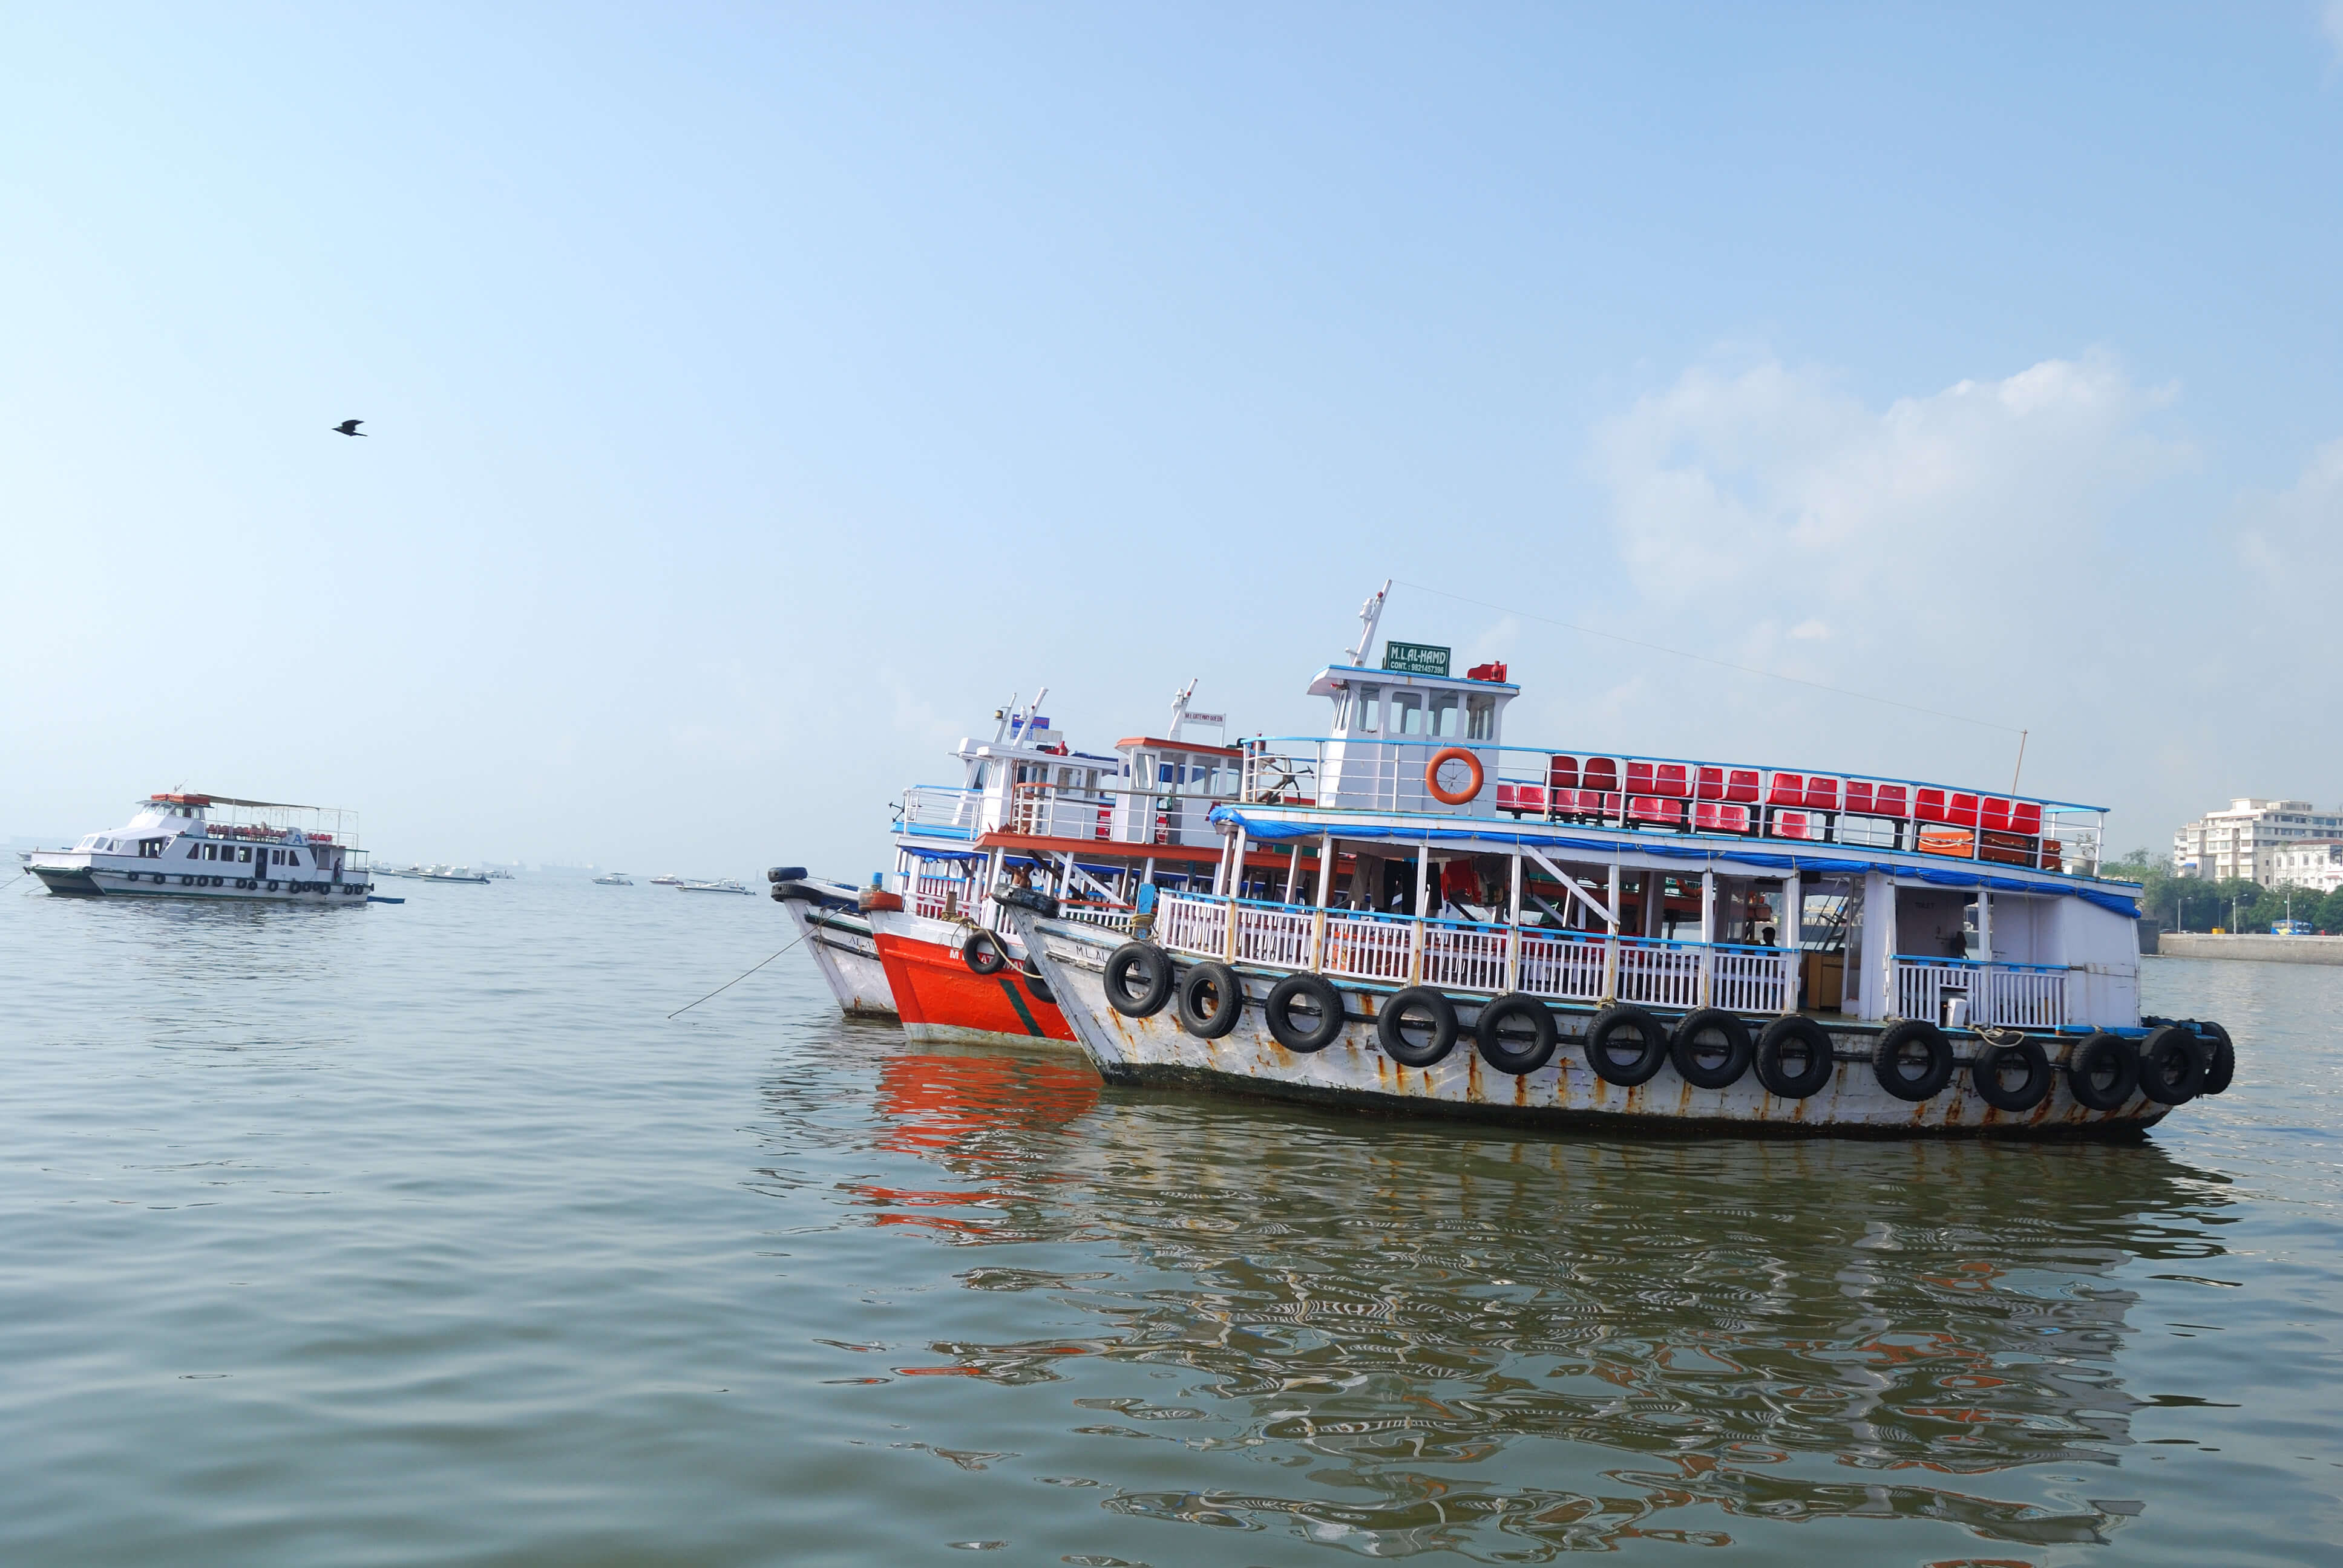 A Ferry in Mumbai